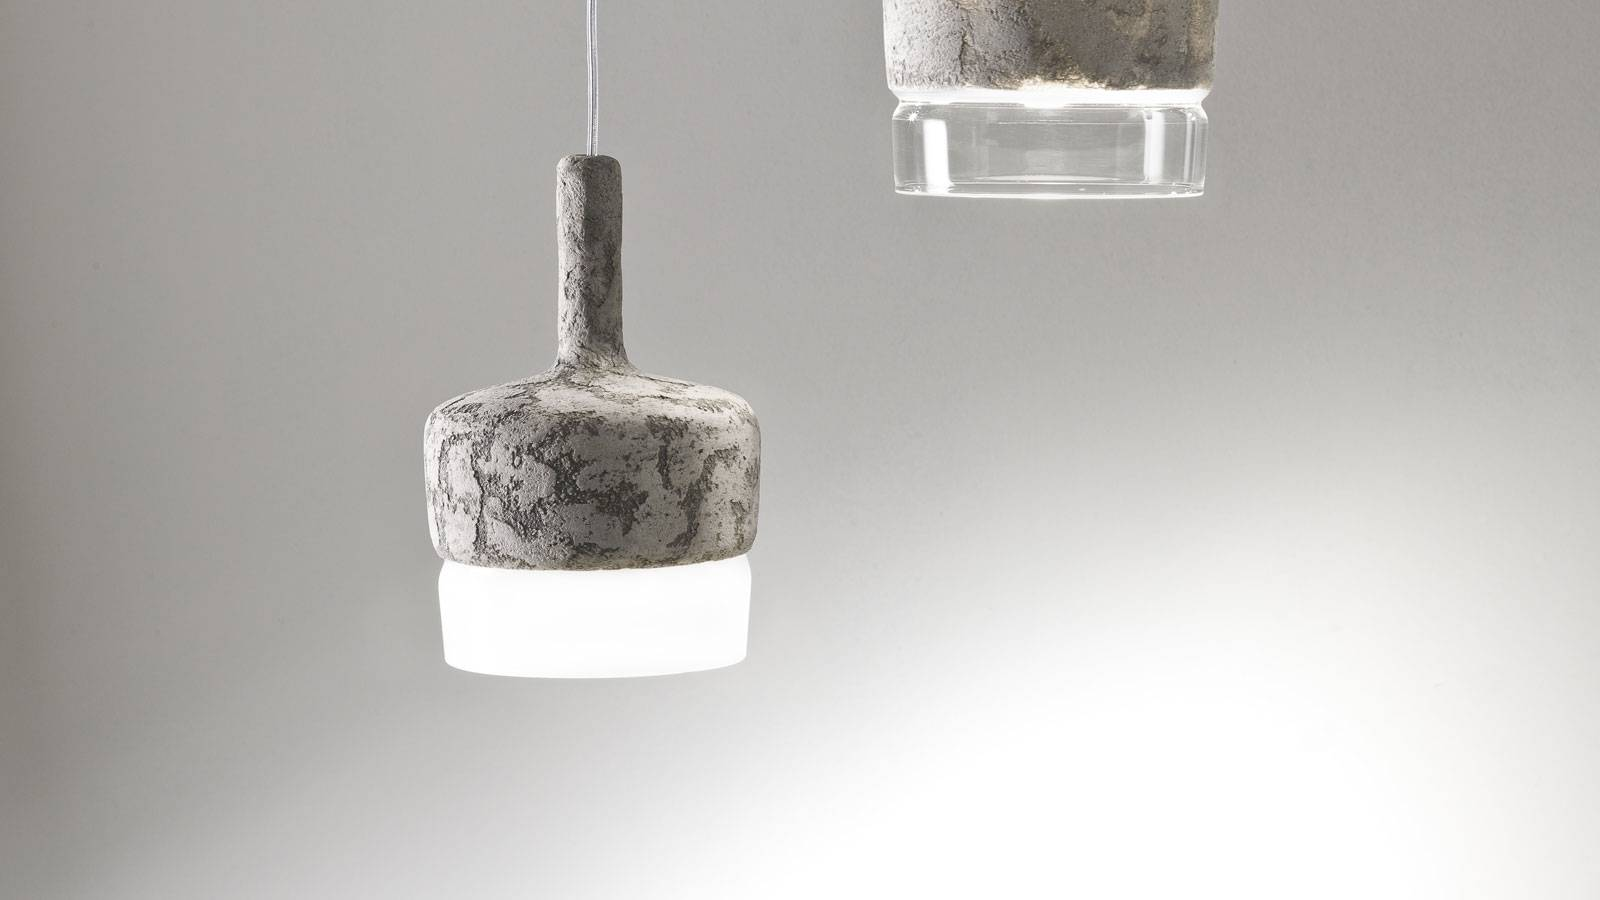 design and light by Matteo Bianchi for Penta